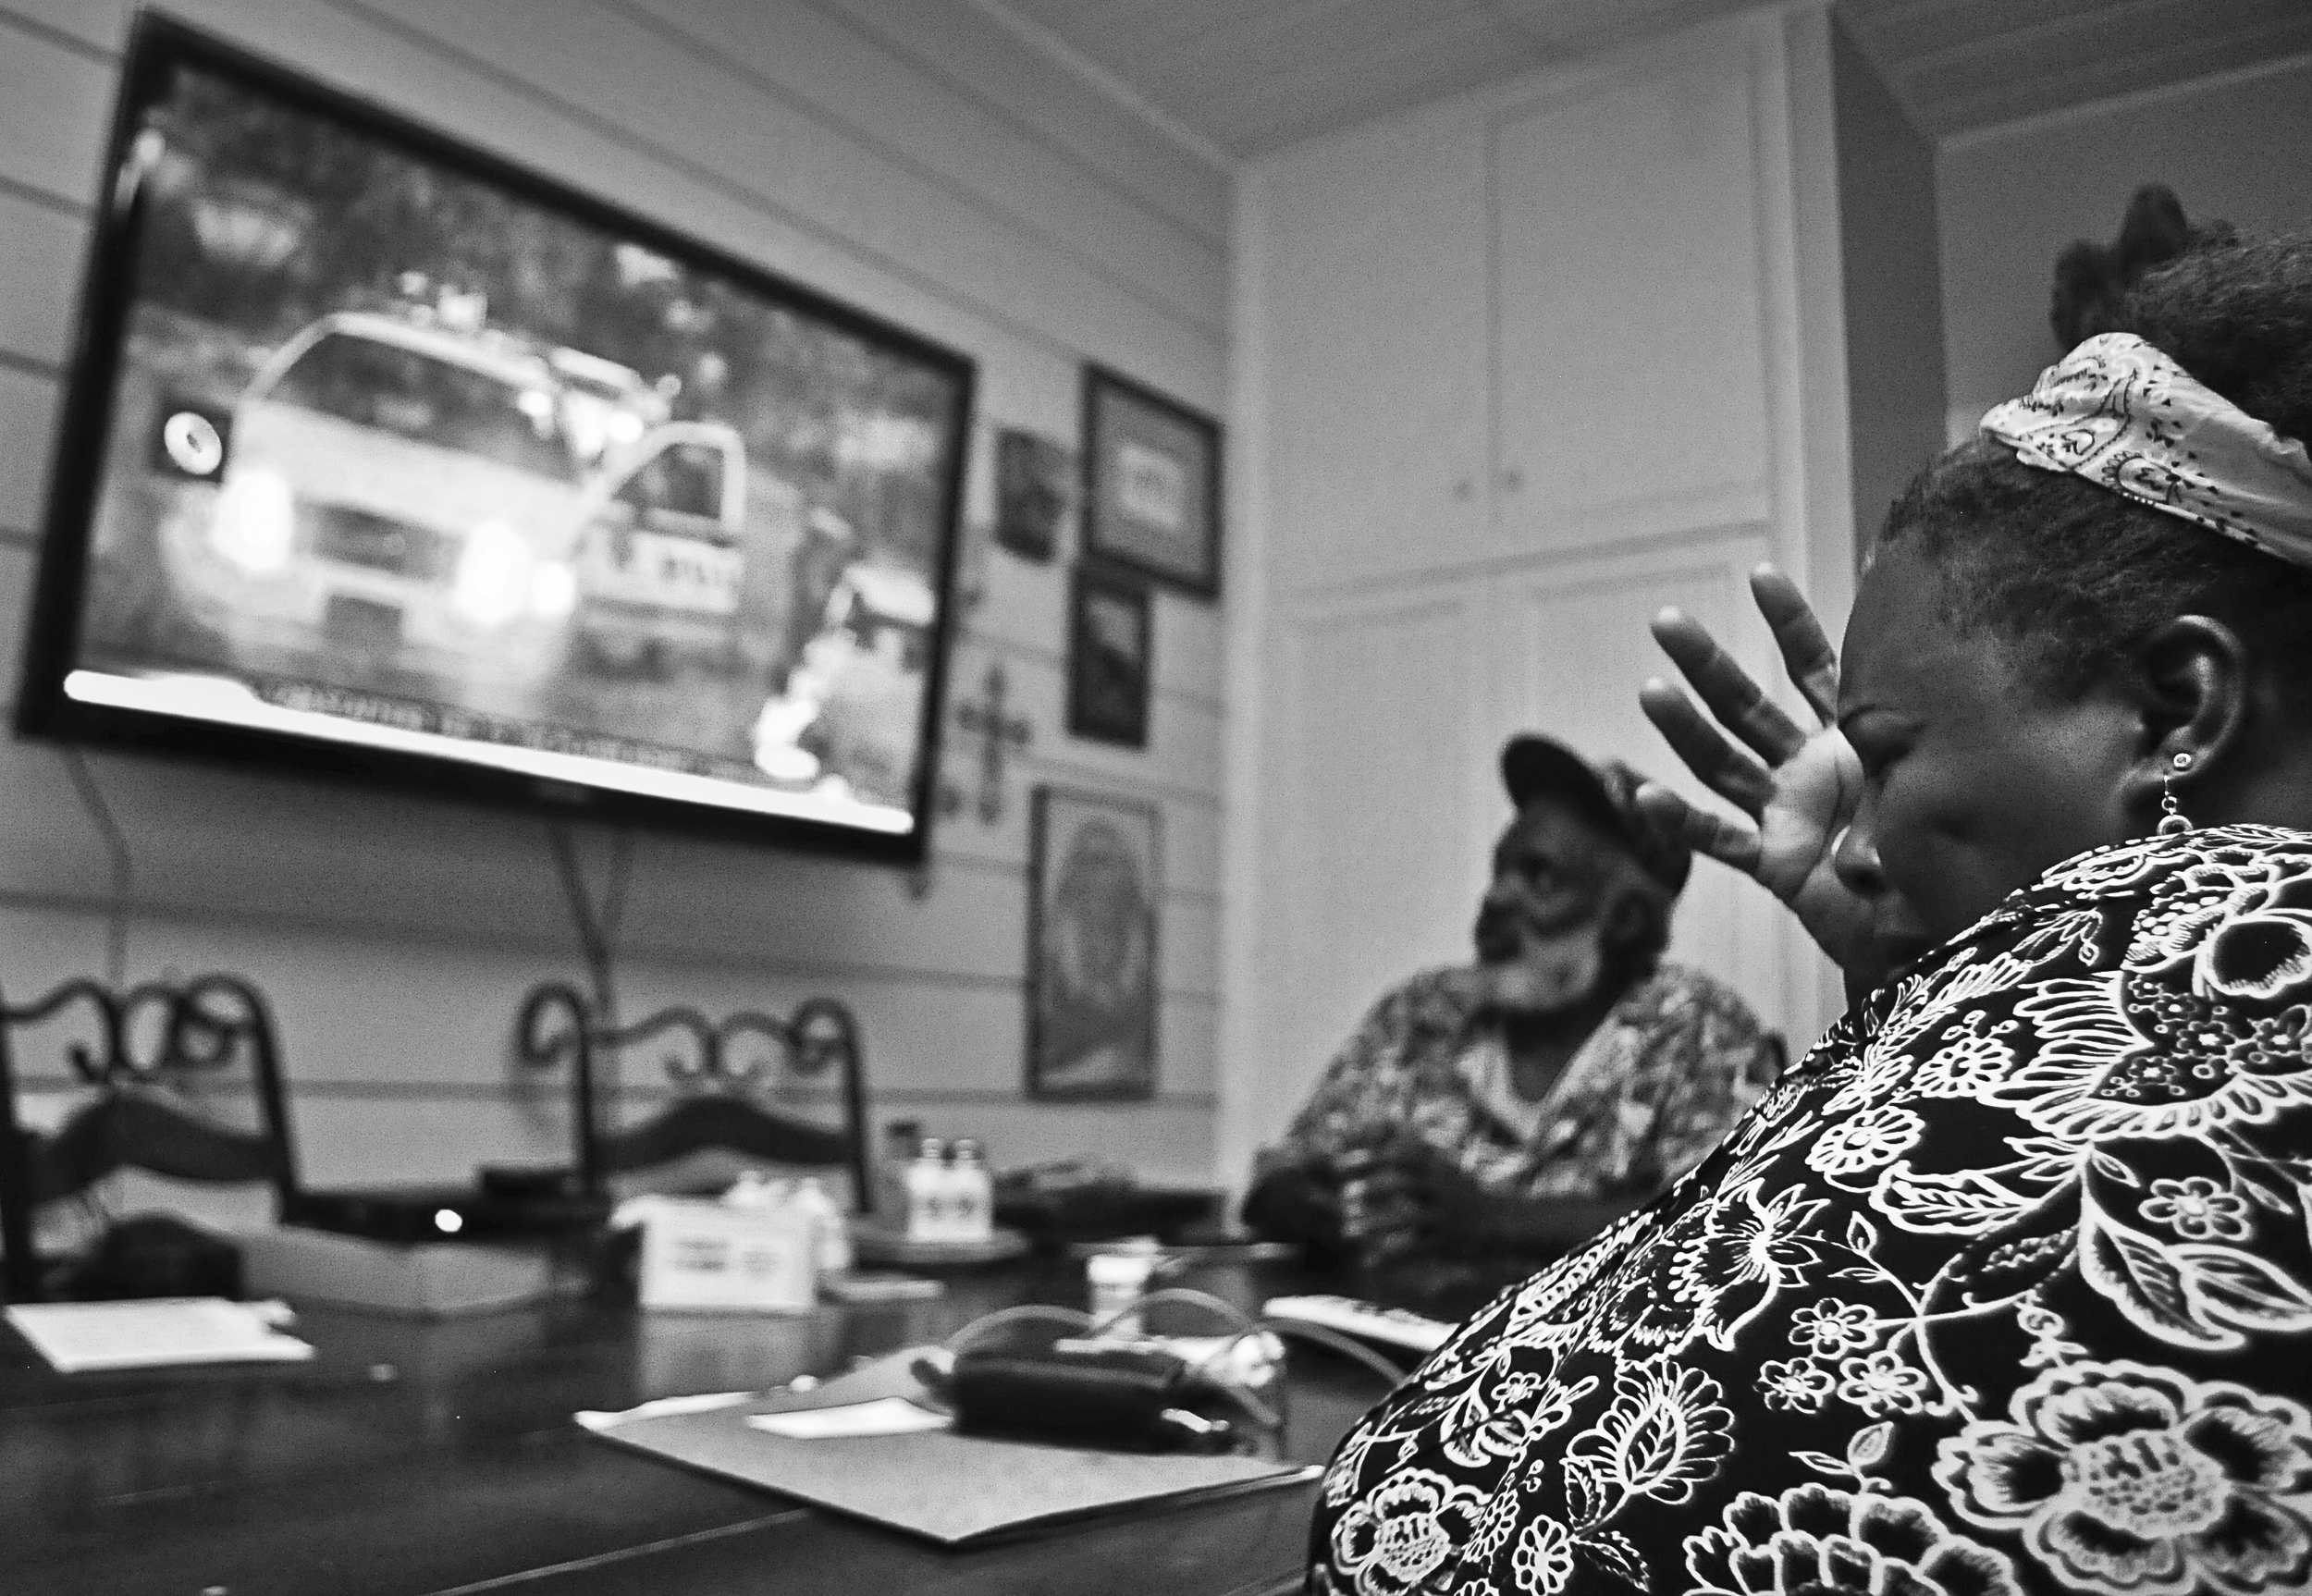 Tonya Clardy, the sister in law of shooting victim Bobby Clark, gets emotional while watching a special report about the shootings in Tonya's home on Sunday evening. Nick Oxford for The New York Times